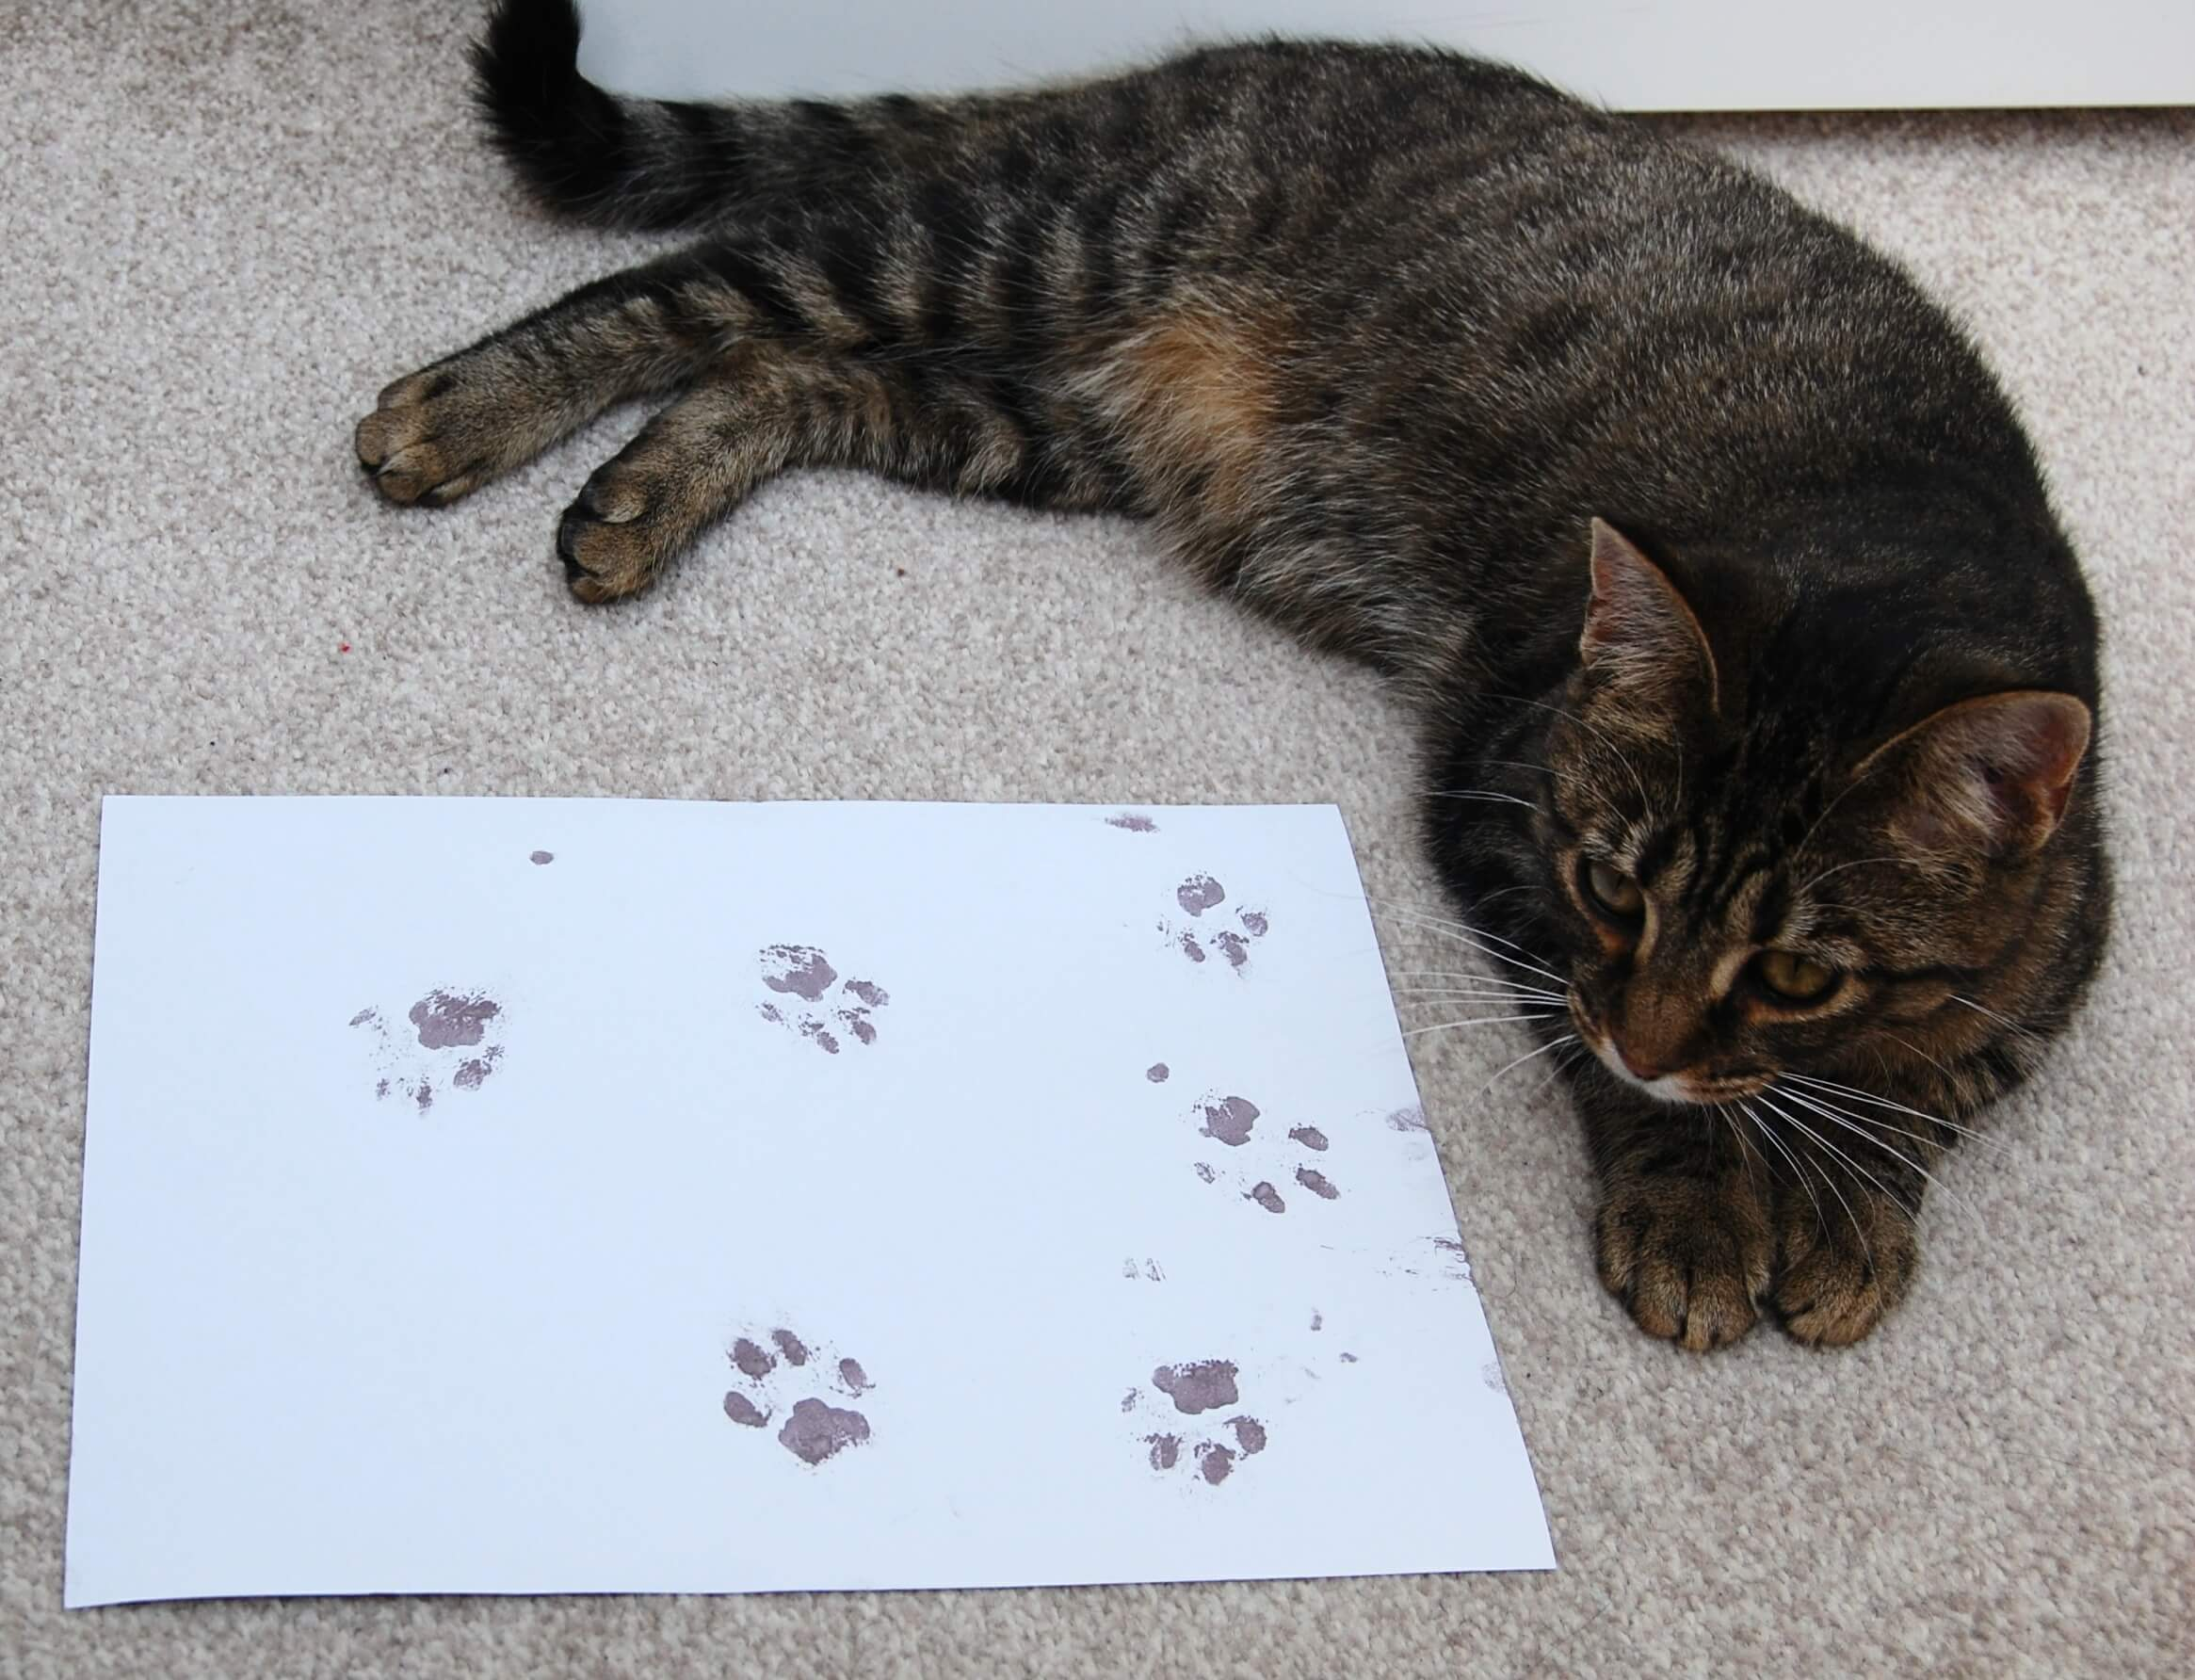 Tiger the tabby cat with her amazing paw prints